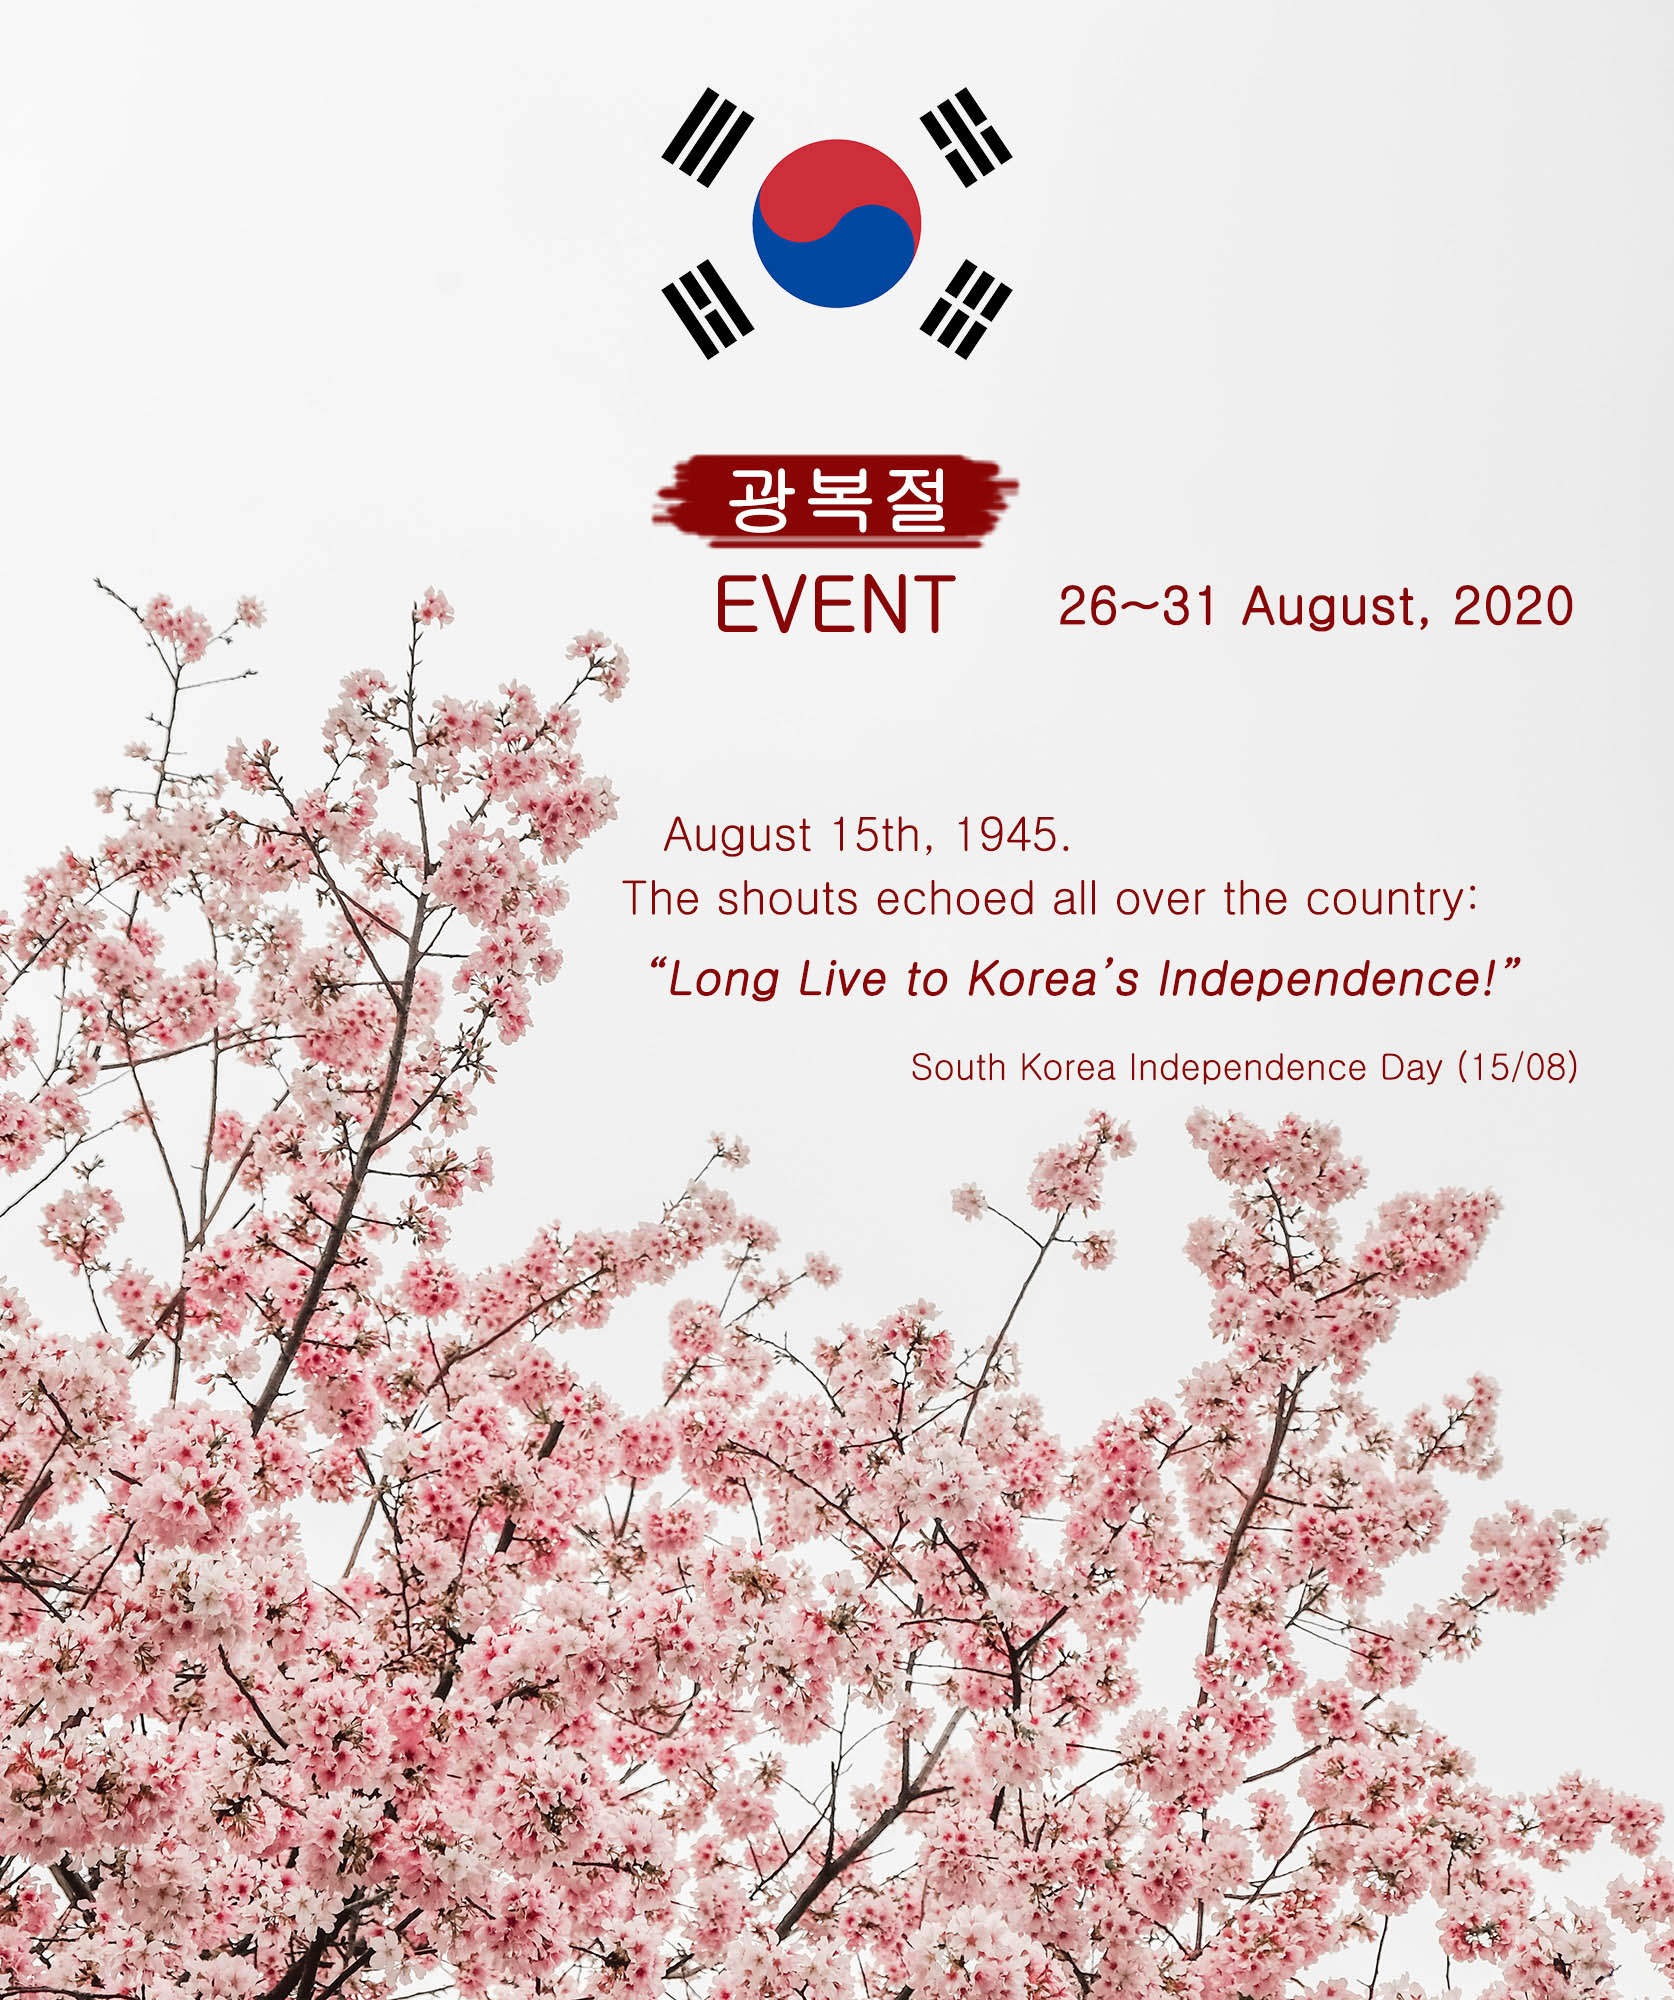 Korea's Independence Day